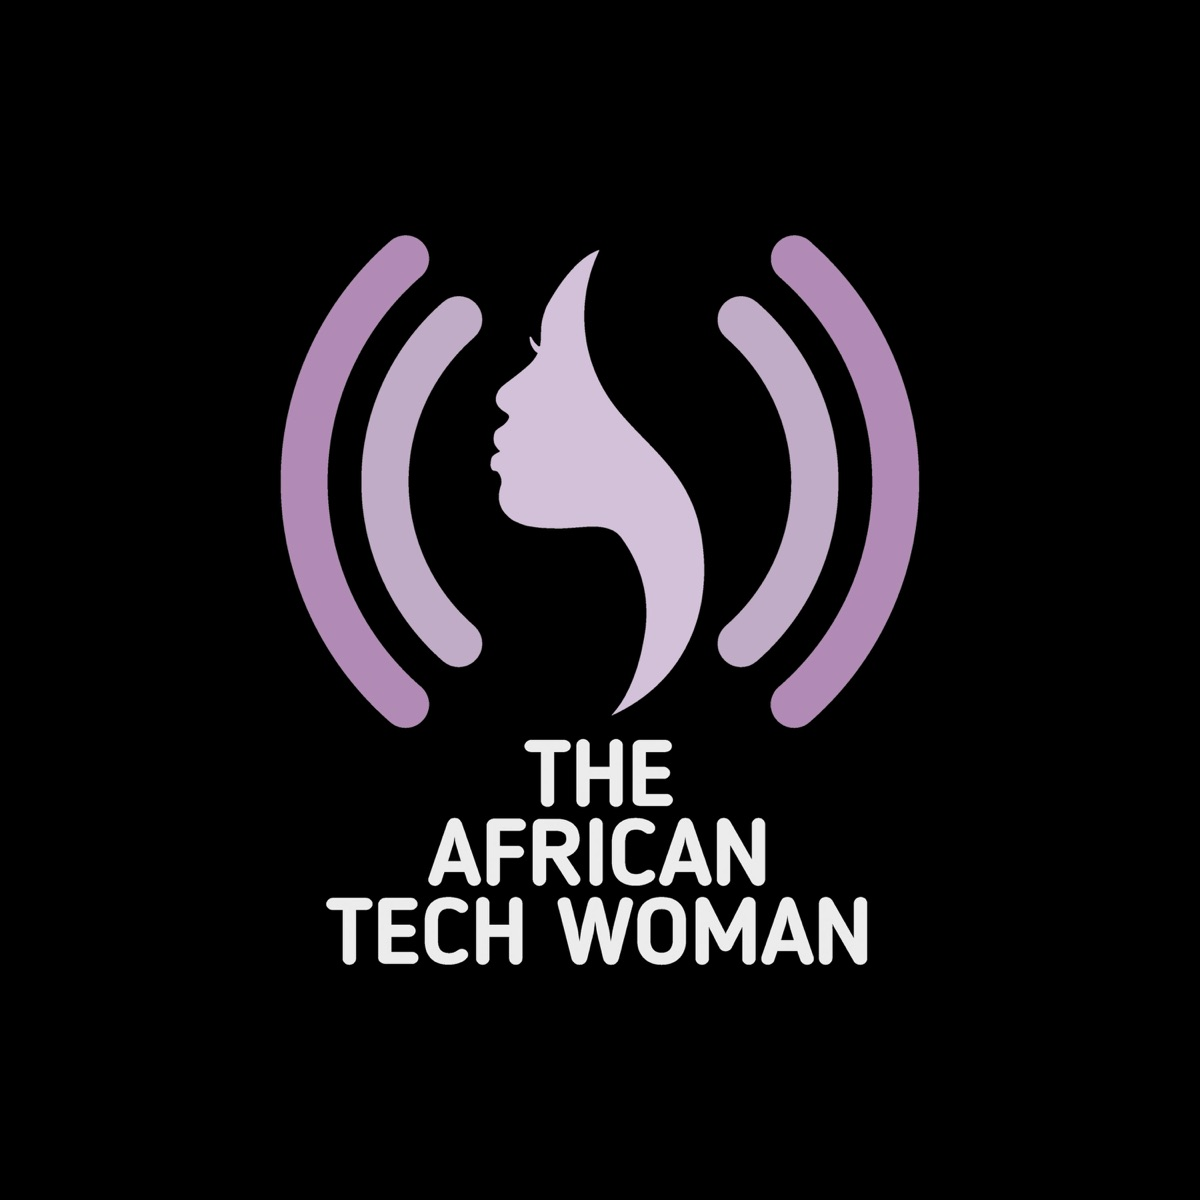 The African Tech Woman